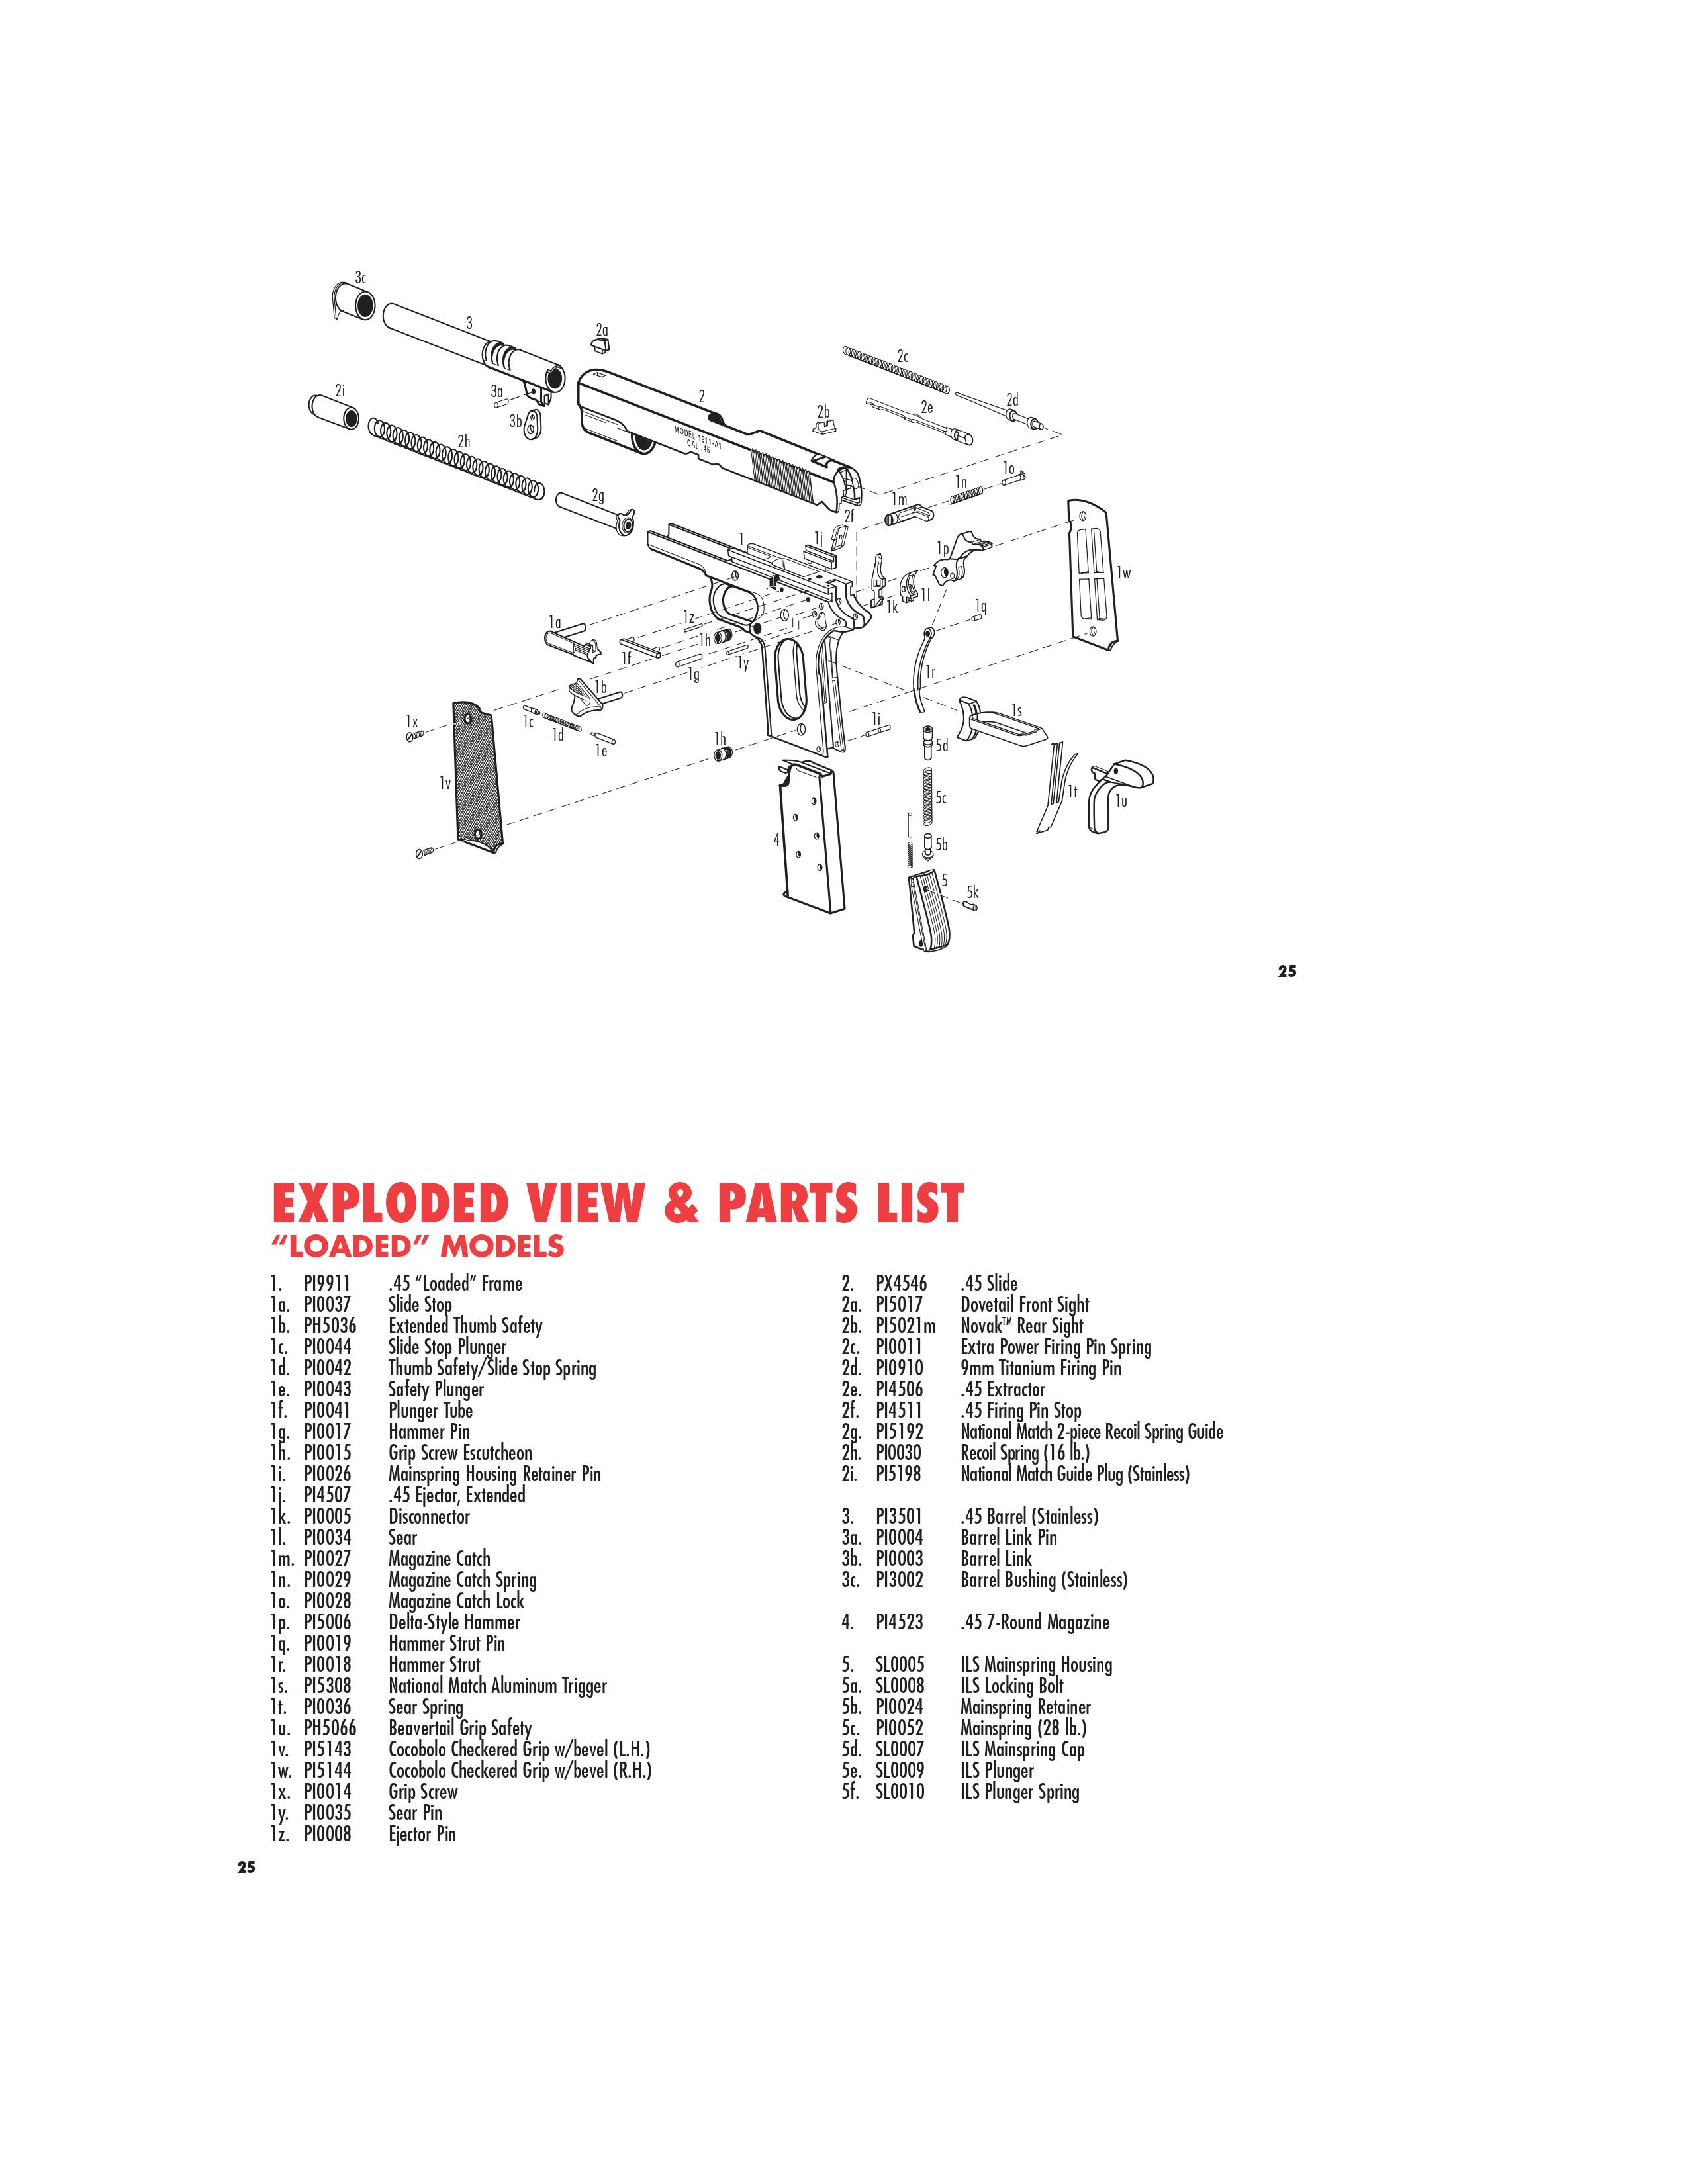 Springfield Armory 1911 Manual Colt Model 1911a1 Parts Diagram Download The In Pdf Format